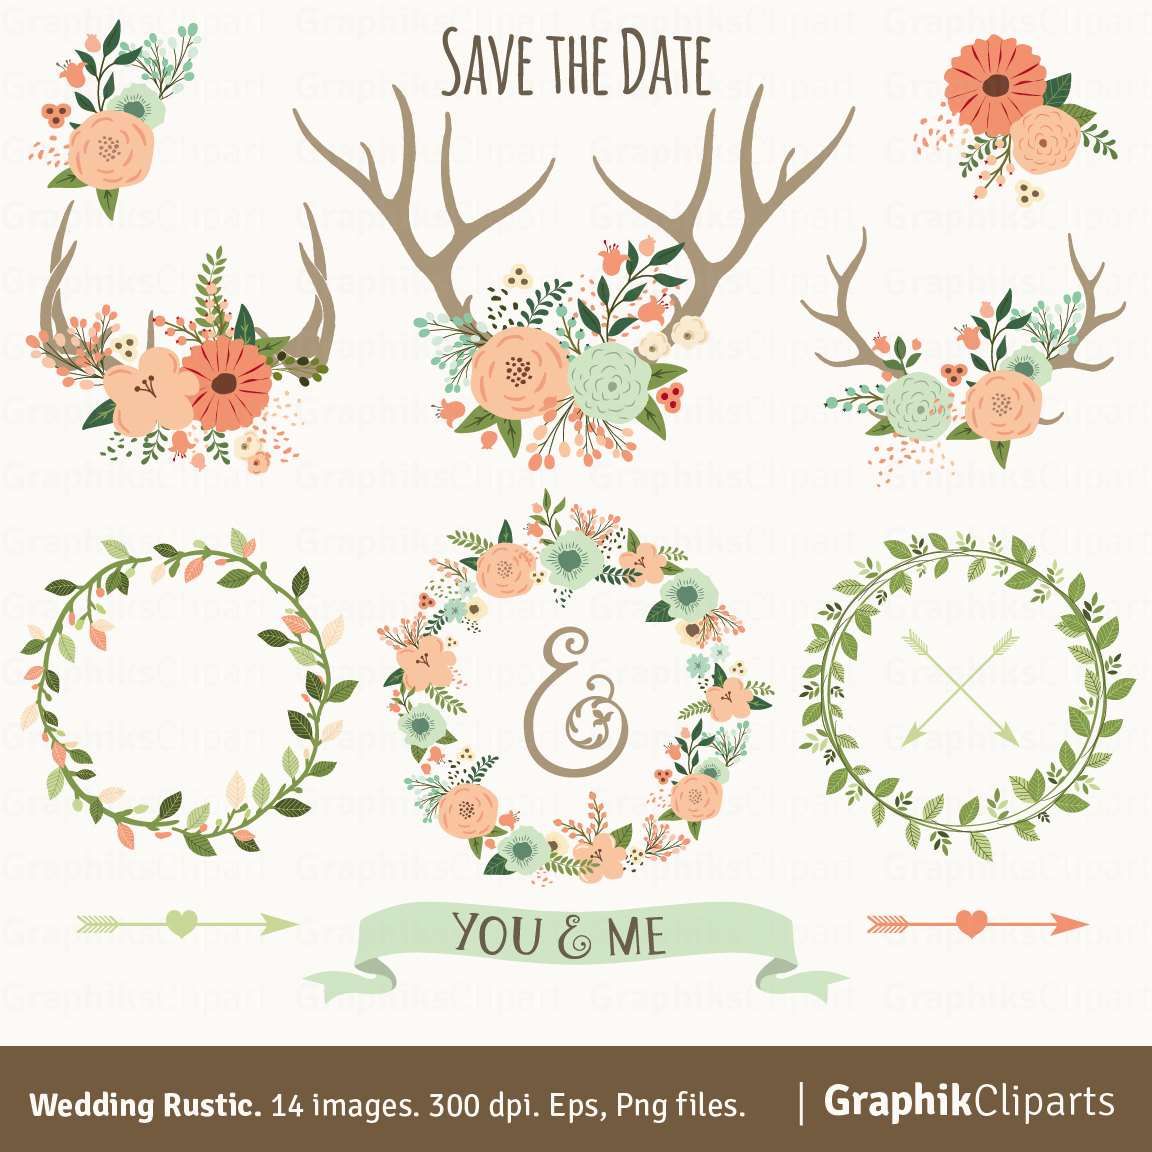 Rustic Wedding Clipart. WEDDING CLIPART. Floral